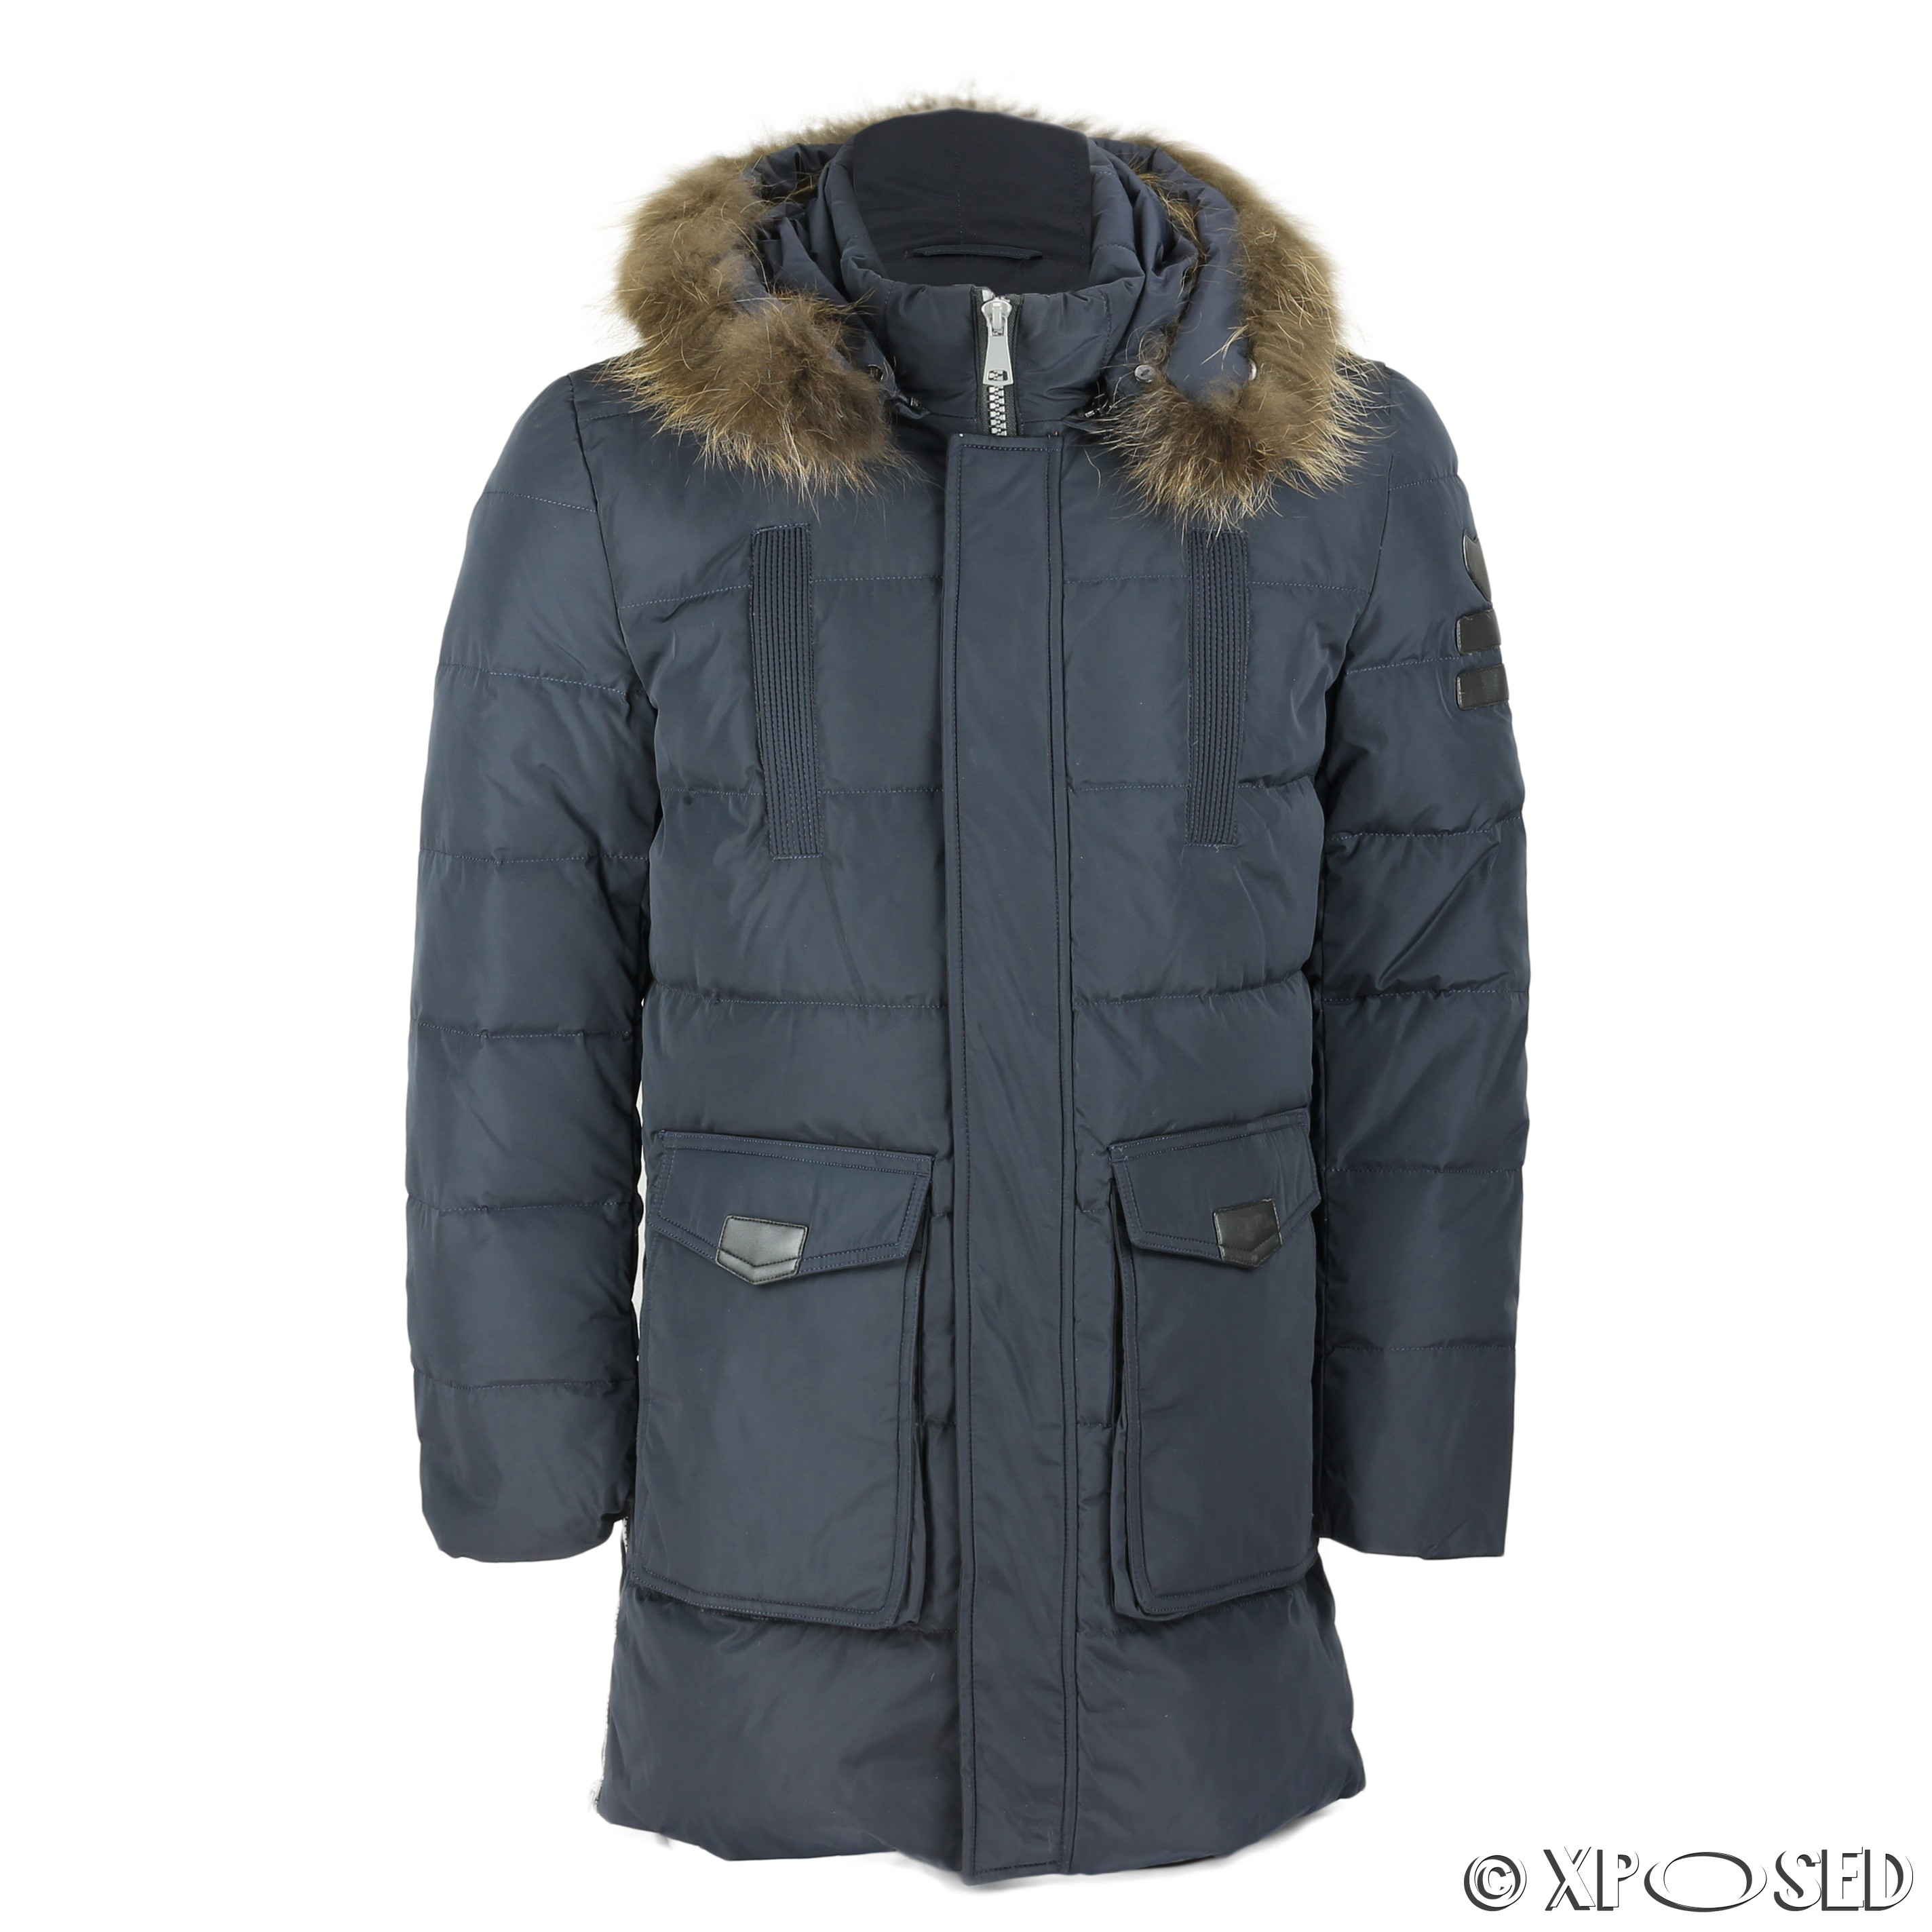 cc8a061f21a Details about New Mens Puffer Padded Fur Hood Down Jacket Winter Warm Parka  Coat Camel Black